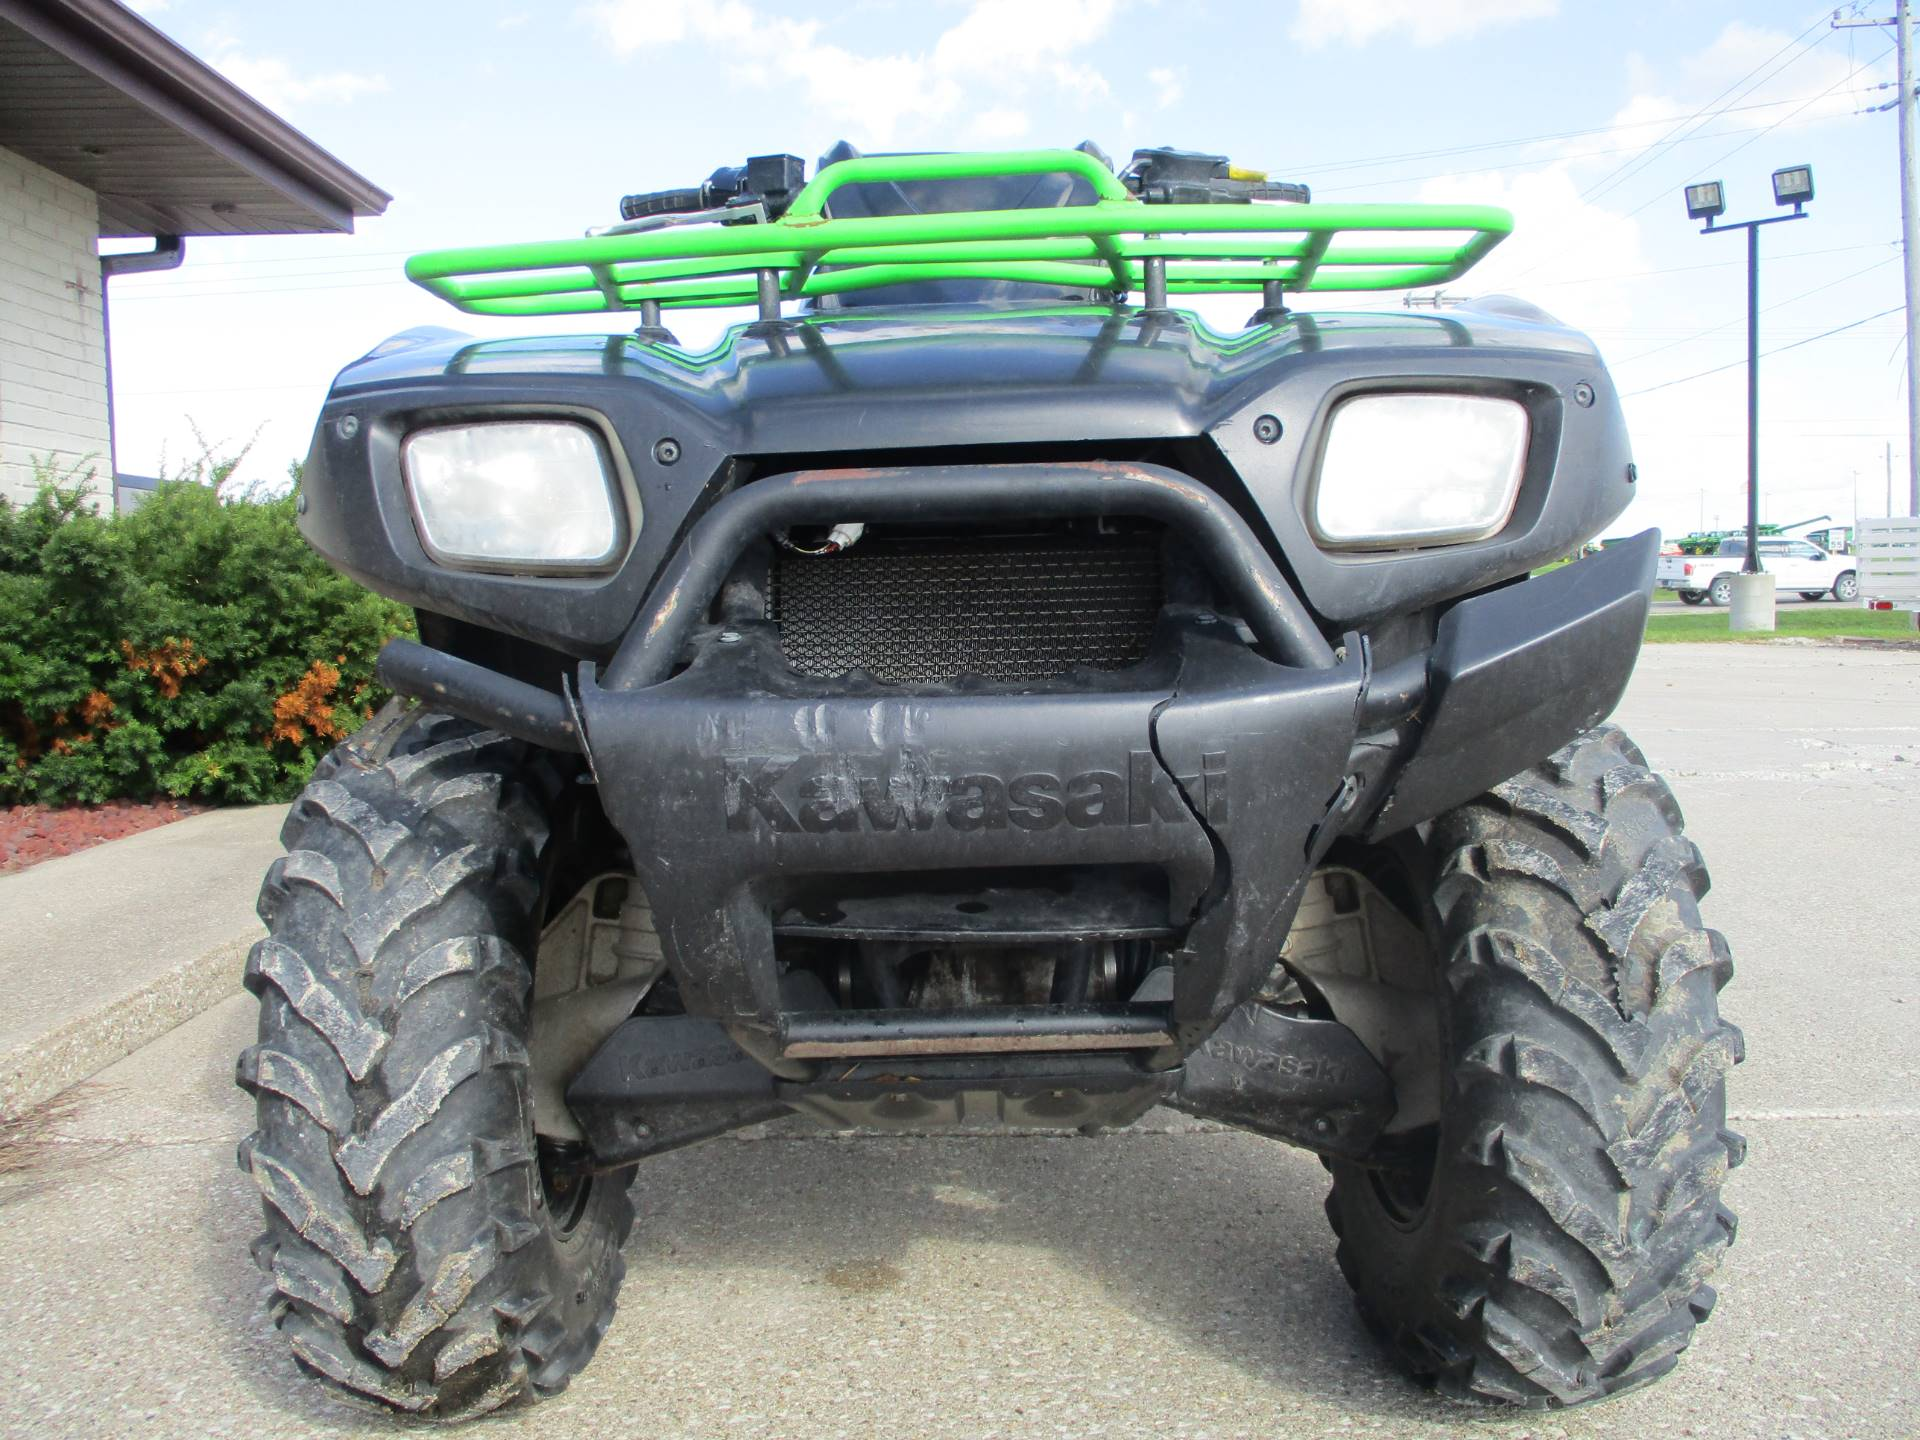 2011 Kawasaki Brute Force® 650 4x4 in Winterset, Iowa - Photo 7